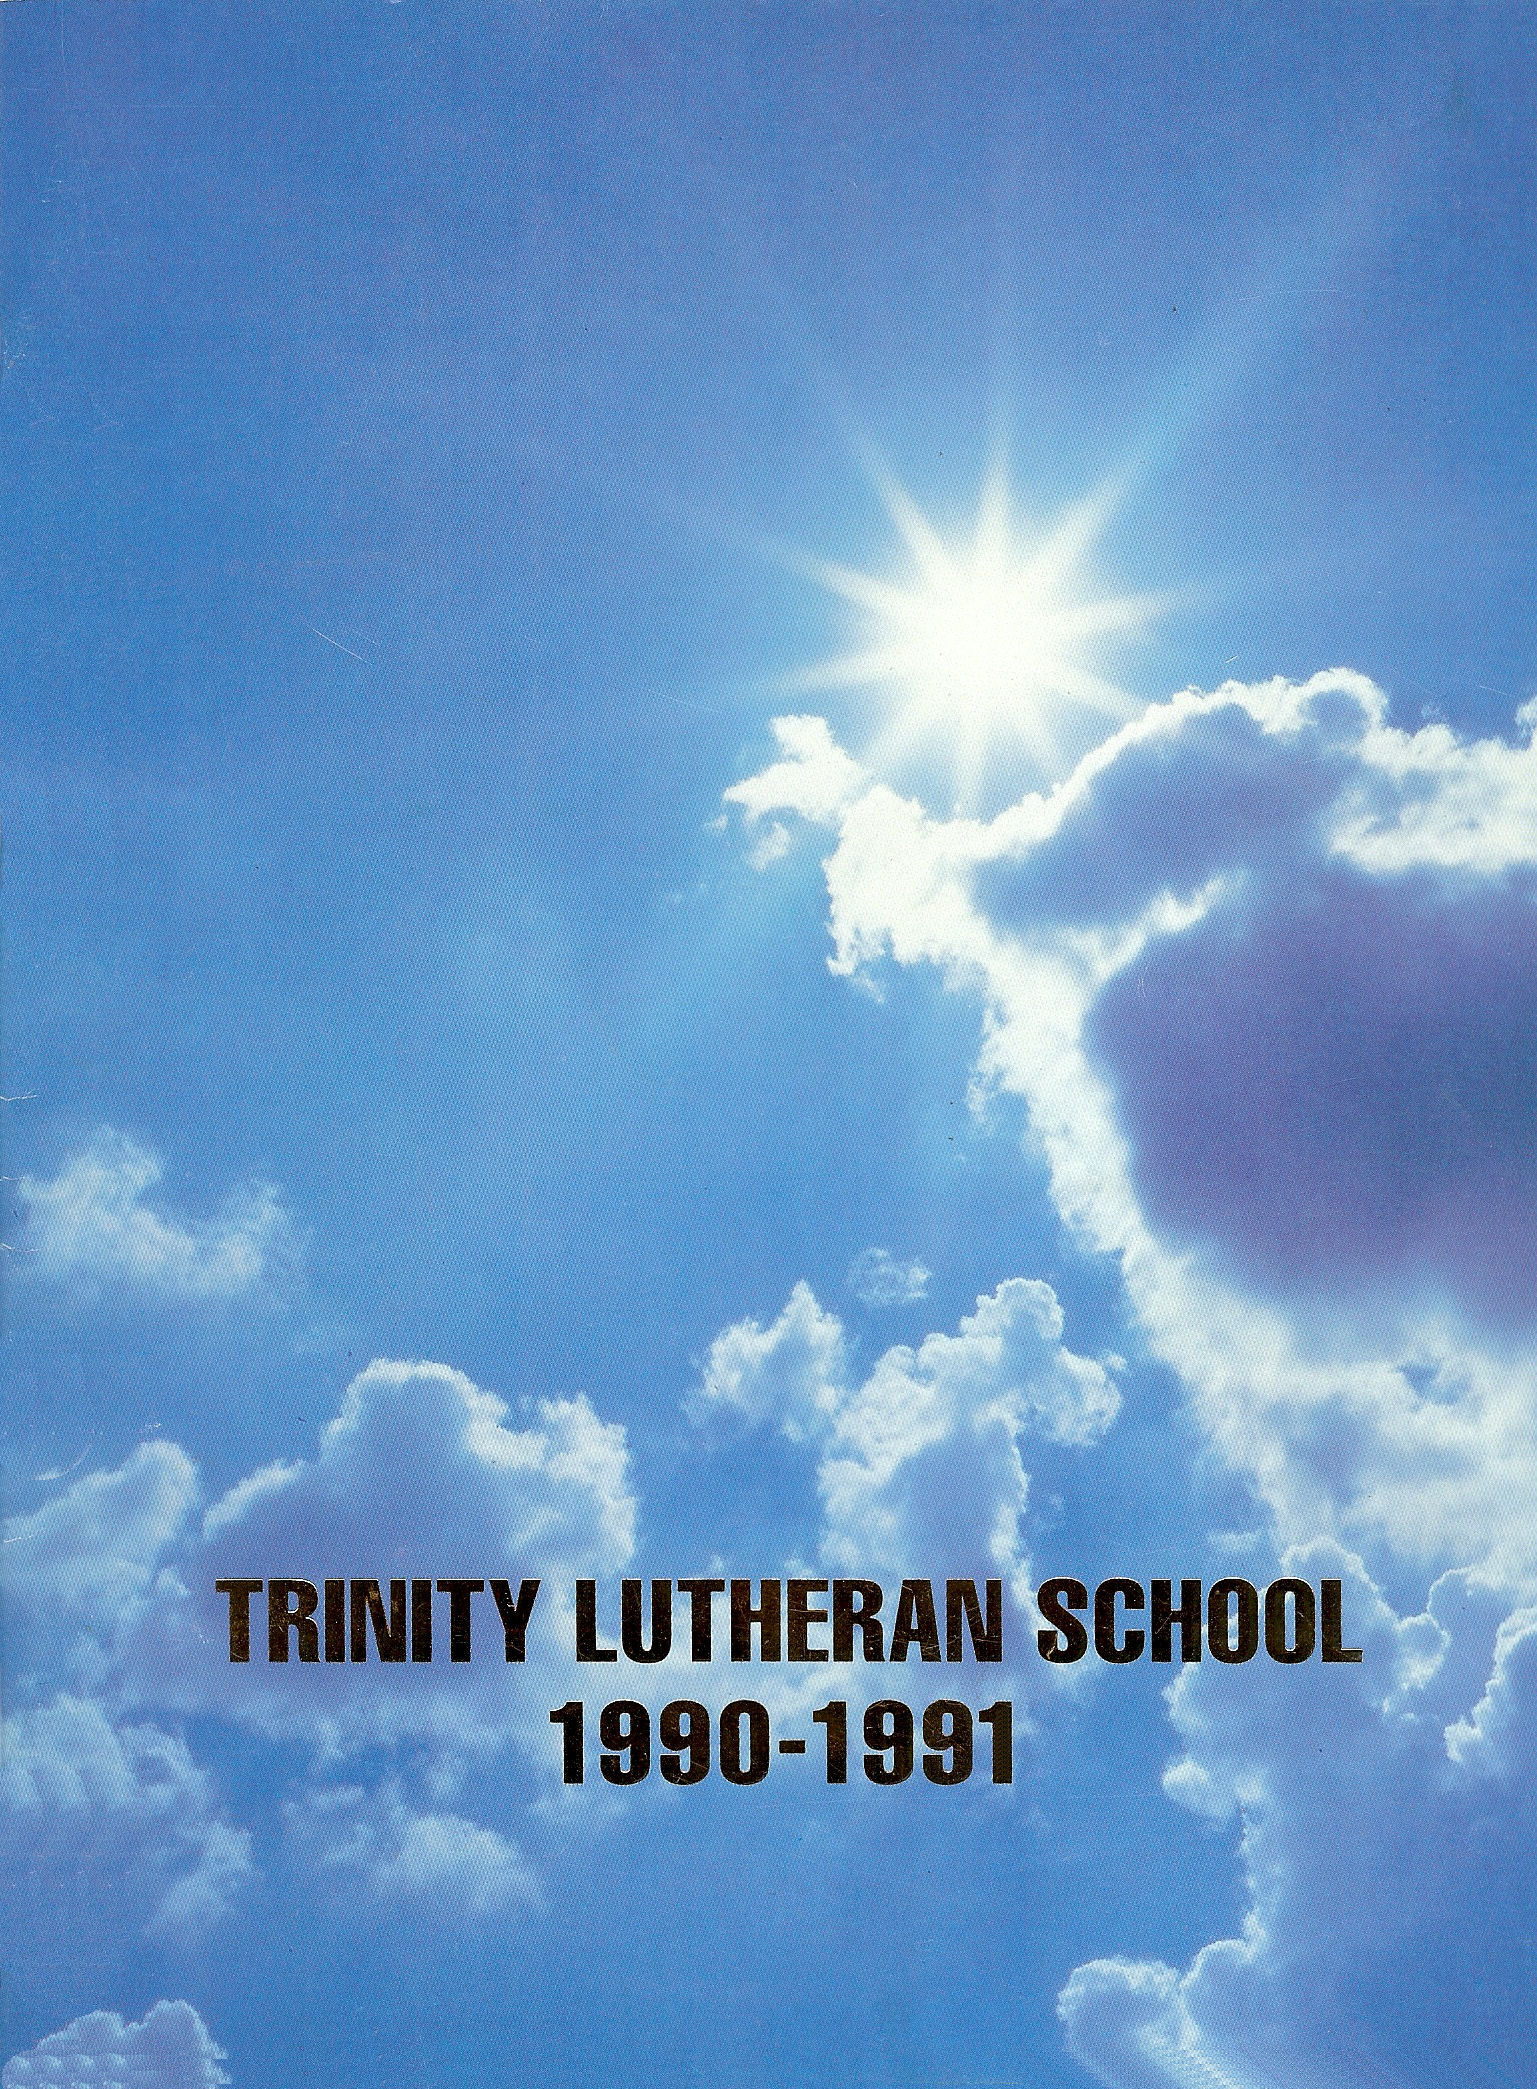 90-91 Yearbook Cover